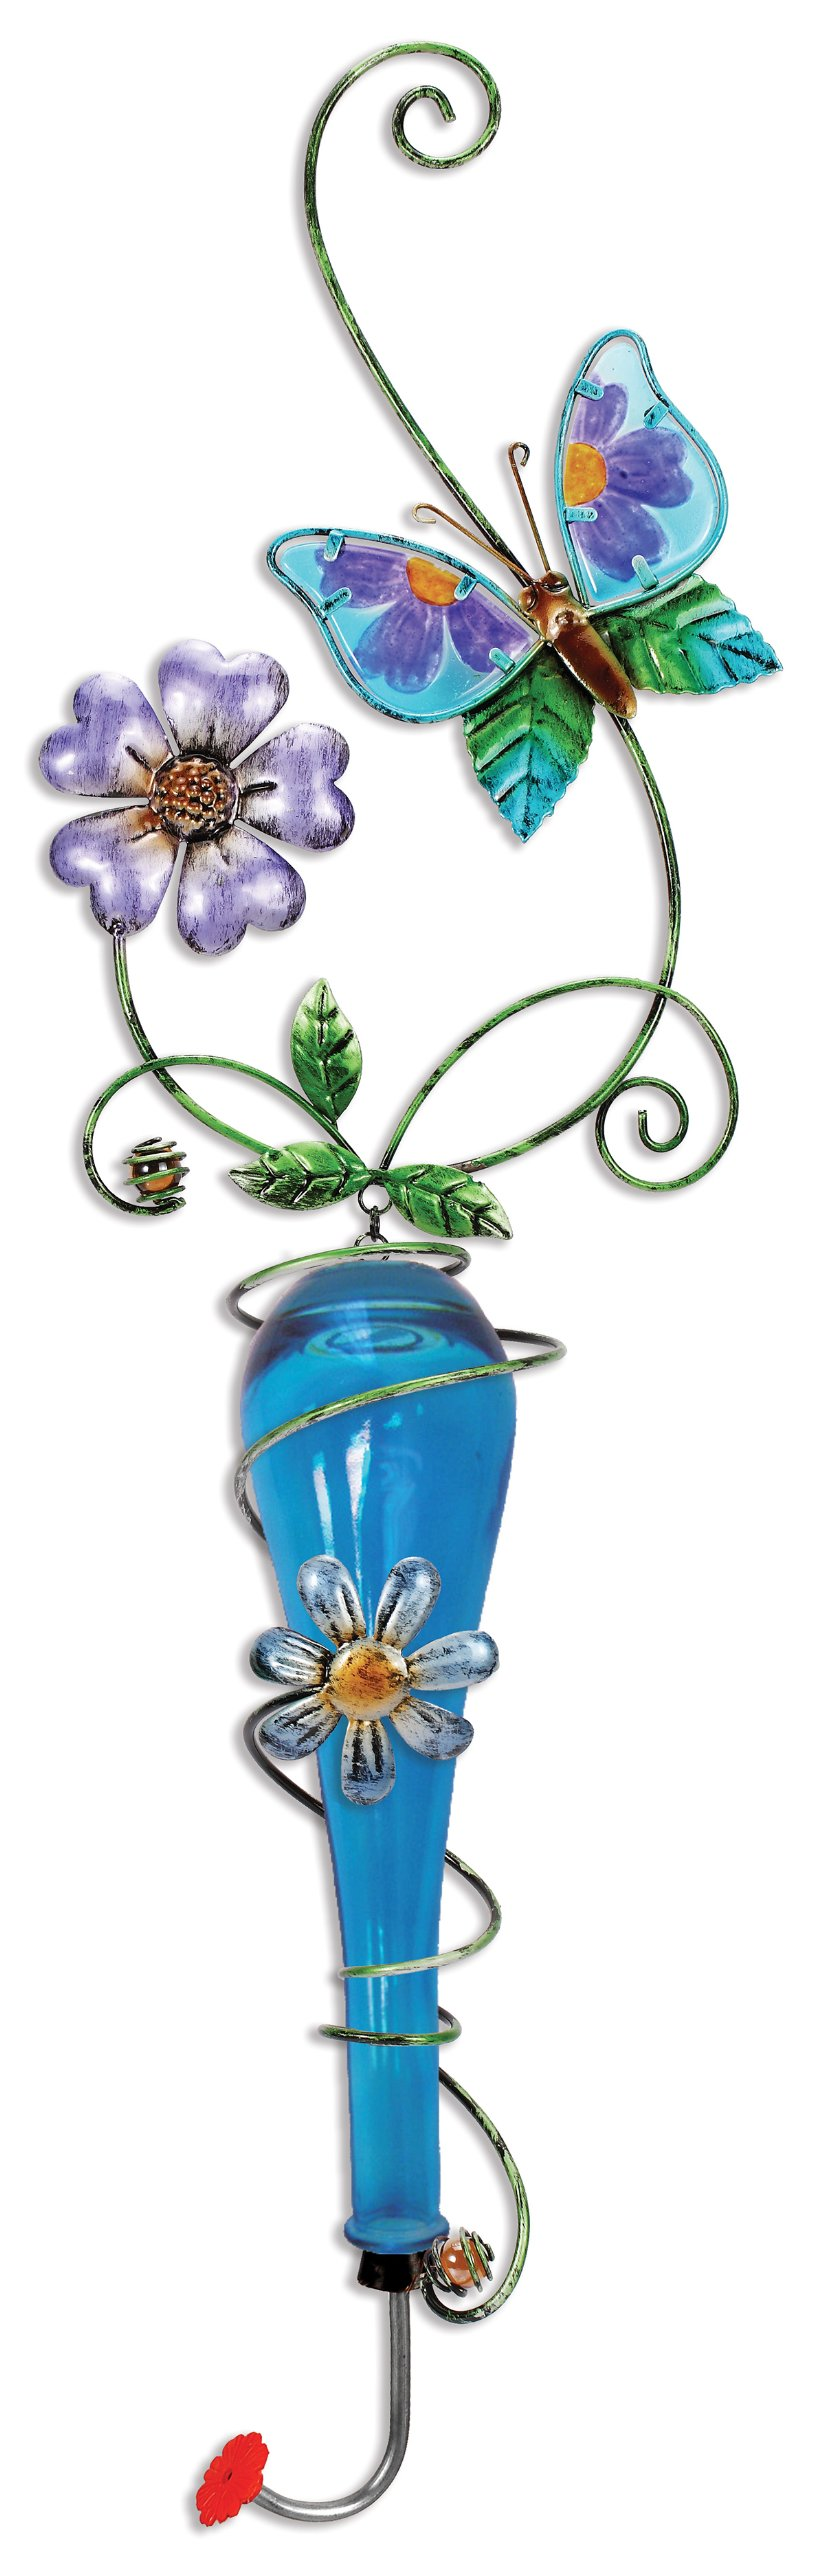 Sunset Vista Design Studios Colored Glass and Metal Hanging Hummingbird Feeder, Butterfly